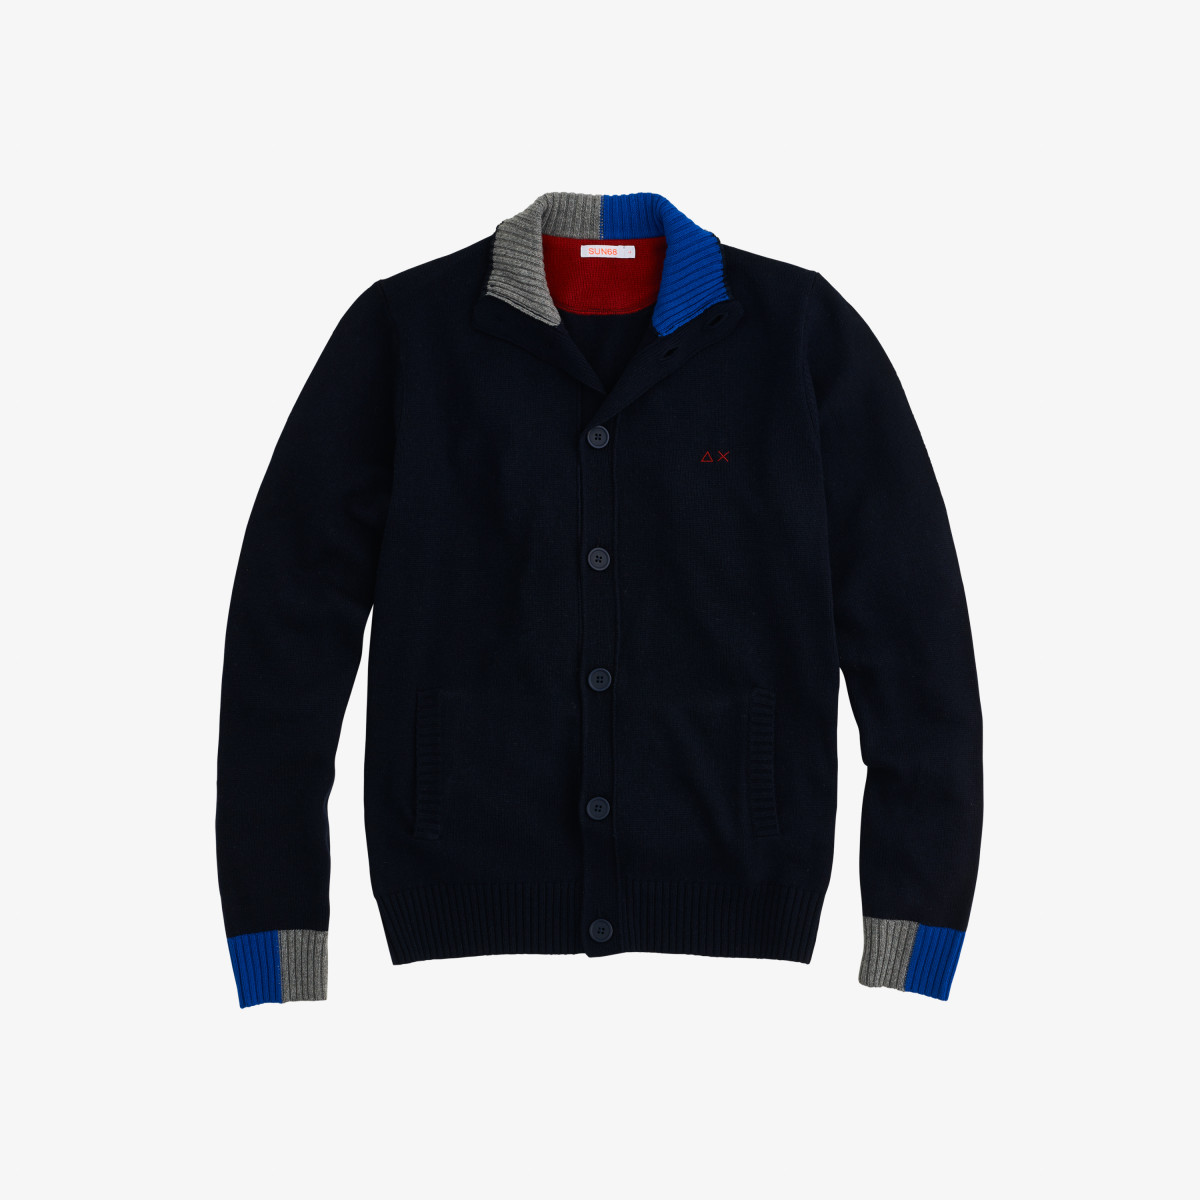 CARDIGAN BUTTONS COLOR RIB NAVY BLUE